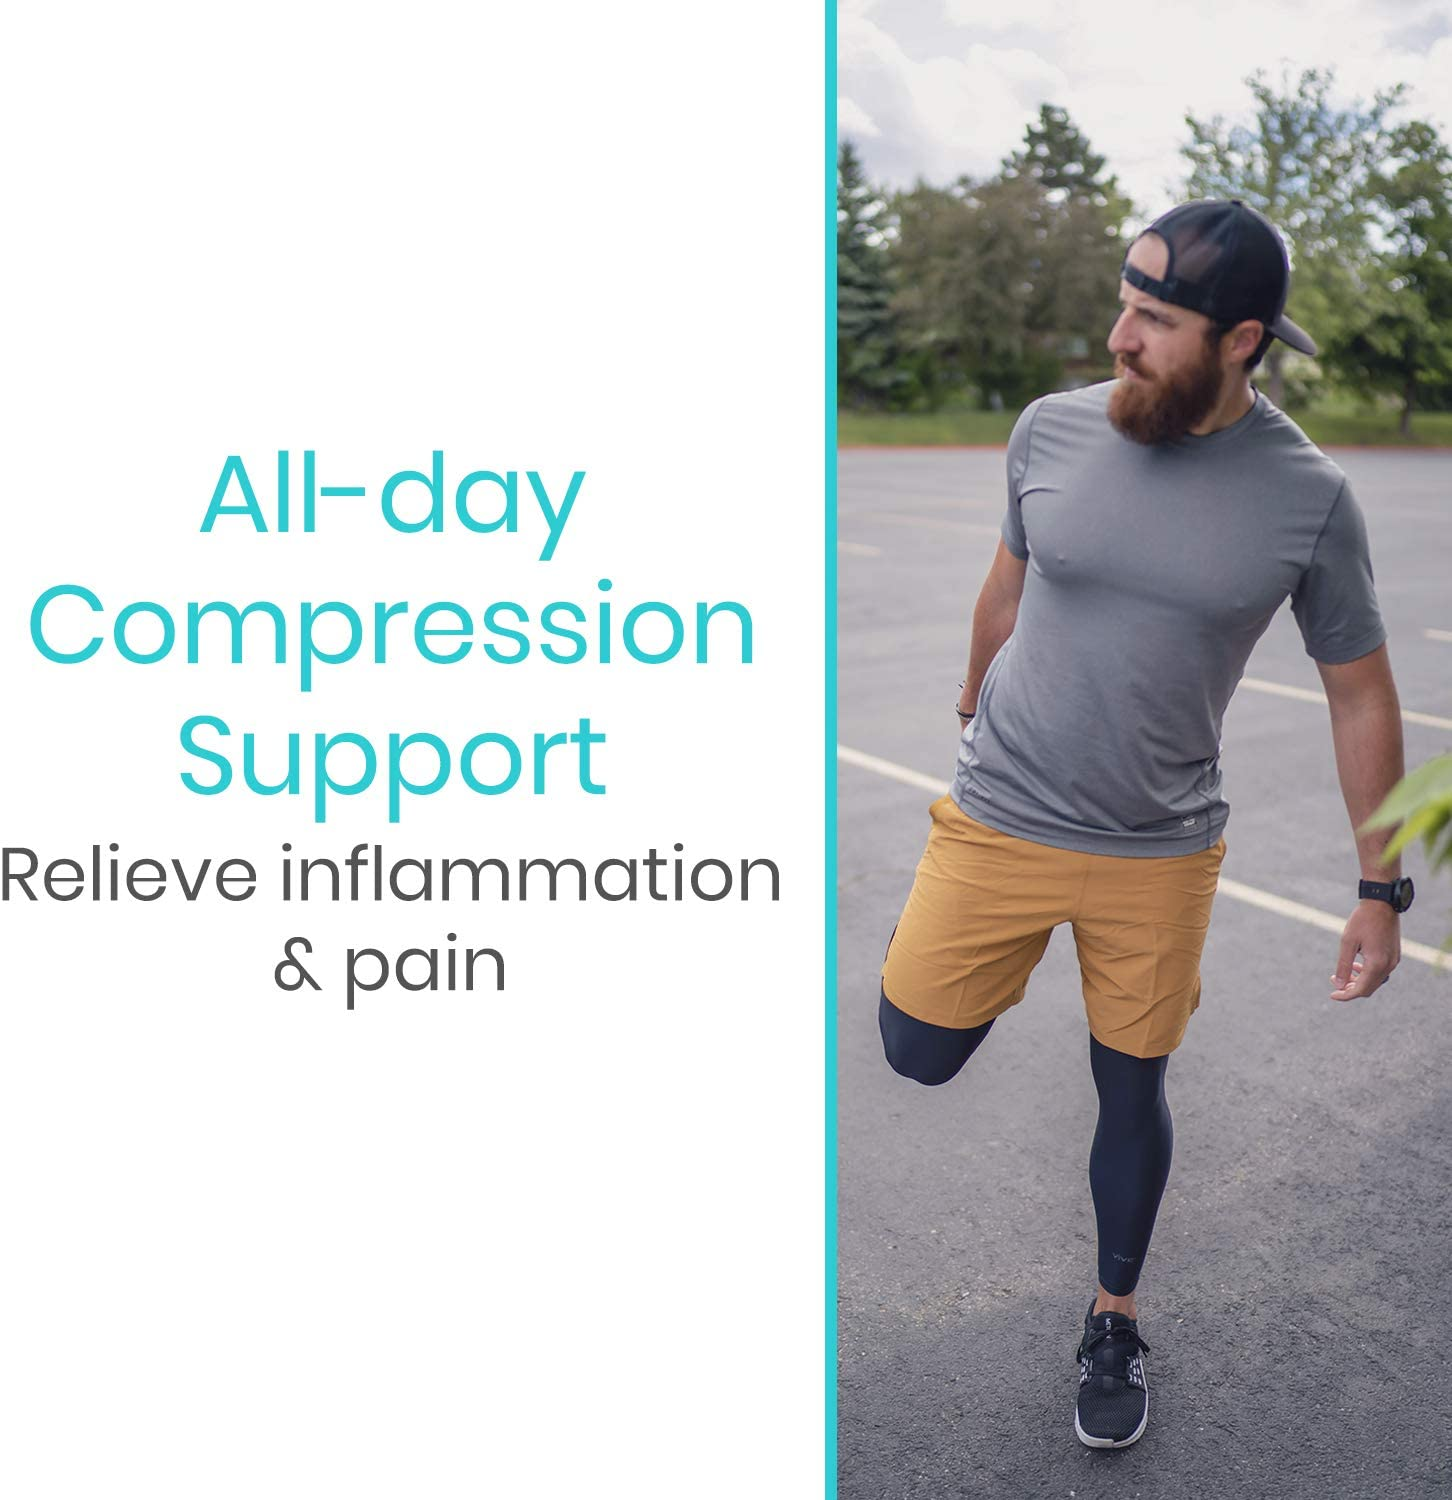 Vive Leg Sleeves (Pair) - Compression Knee, Calf and Thigh Support for Running, Basketball, Crossfit, Weight Lifting, and Sports - Knee Wrap Improves Circulation, Helps Arthritis : Sports & Outdoors